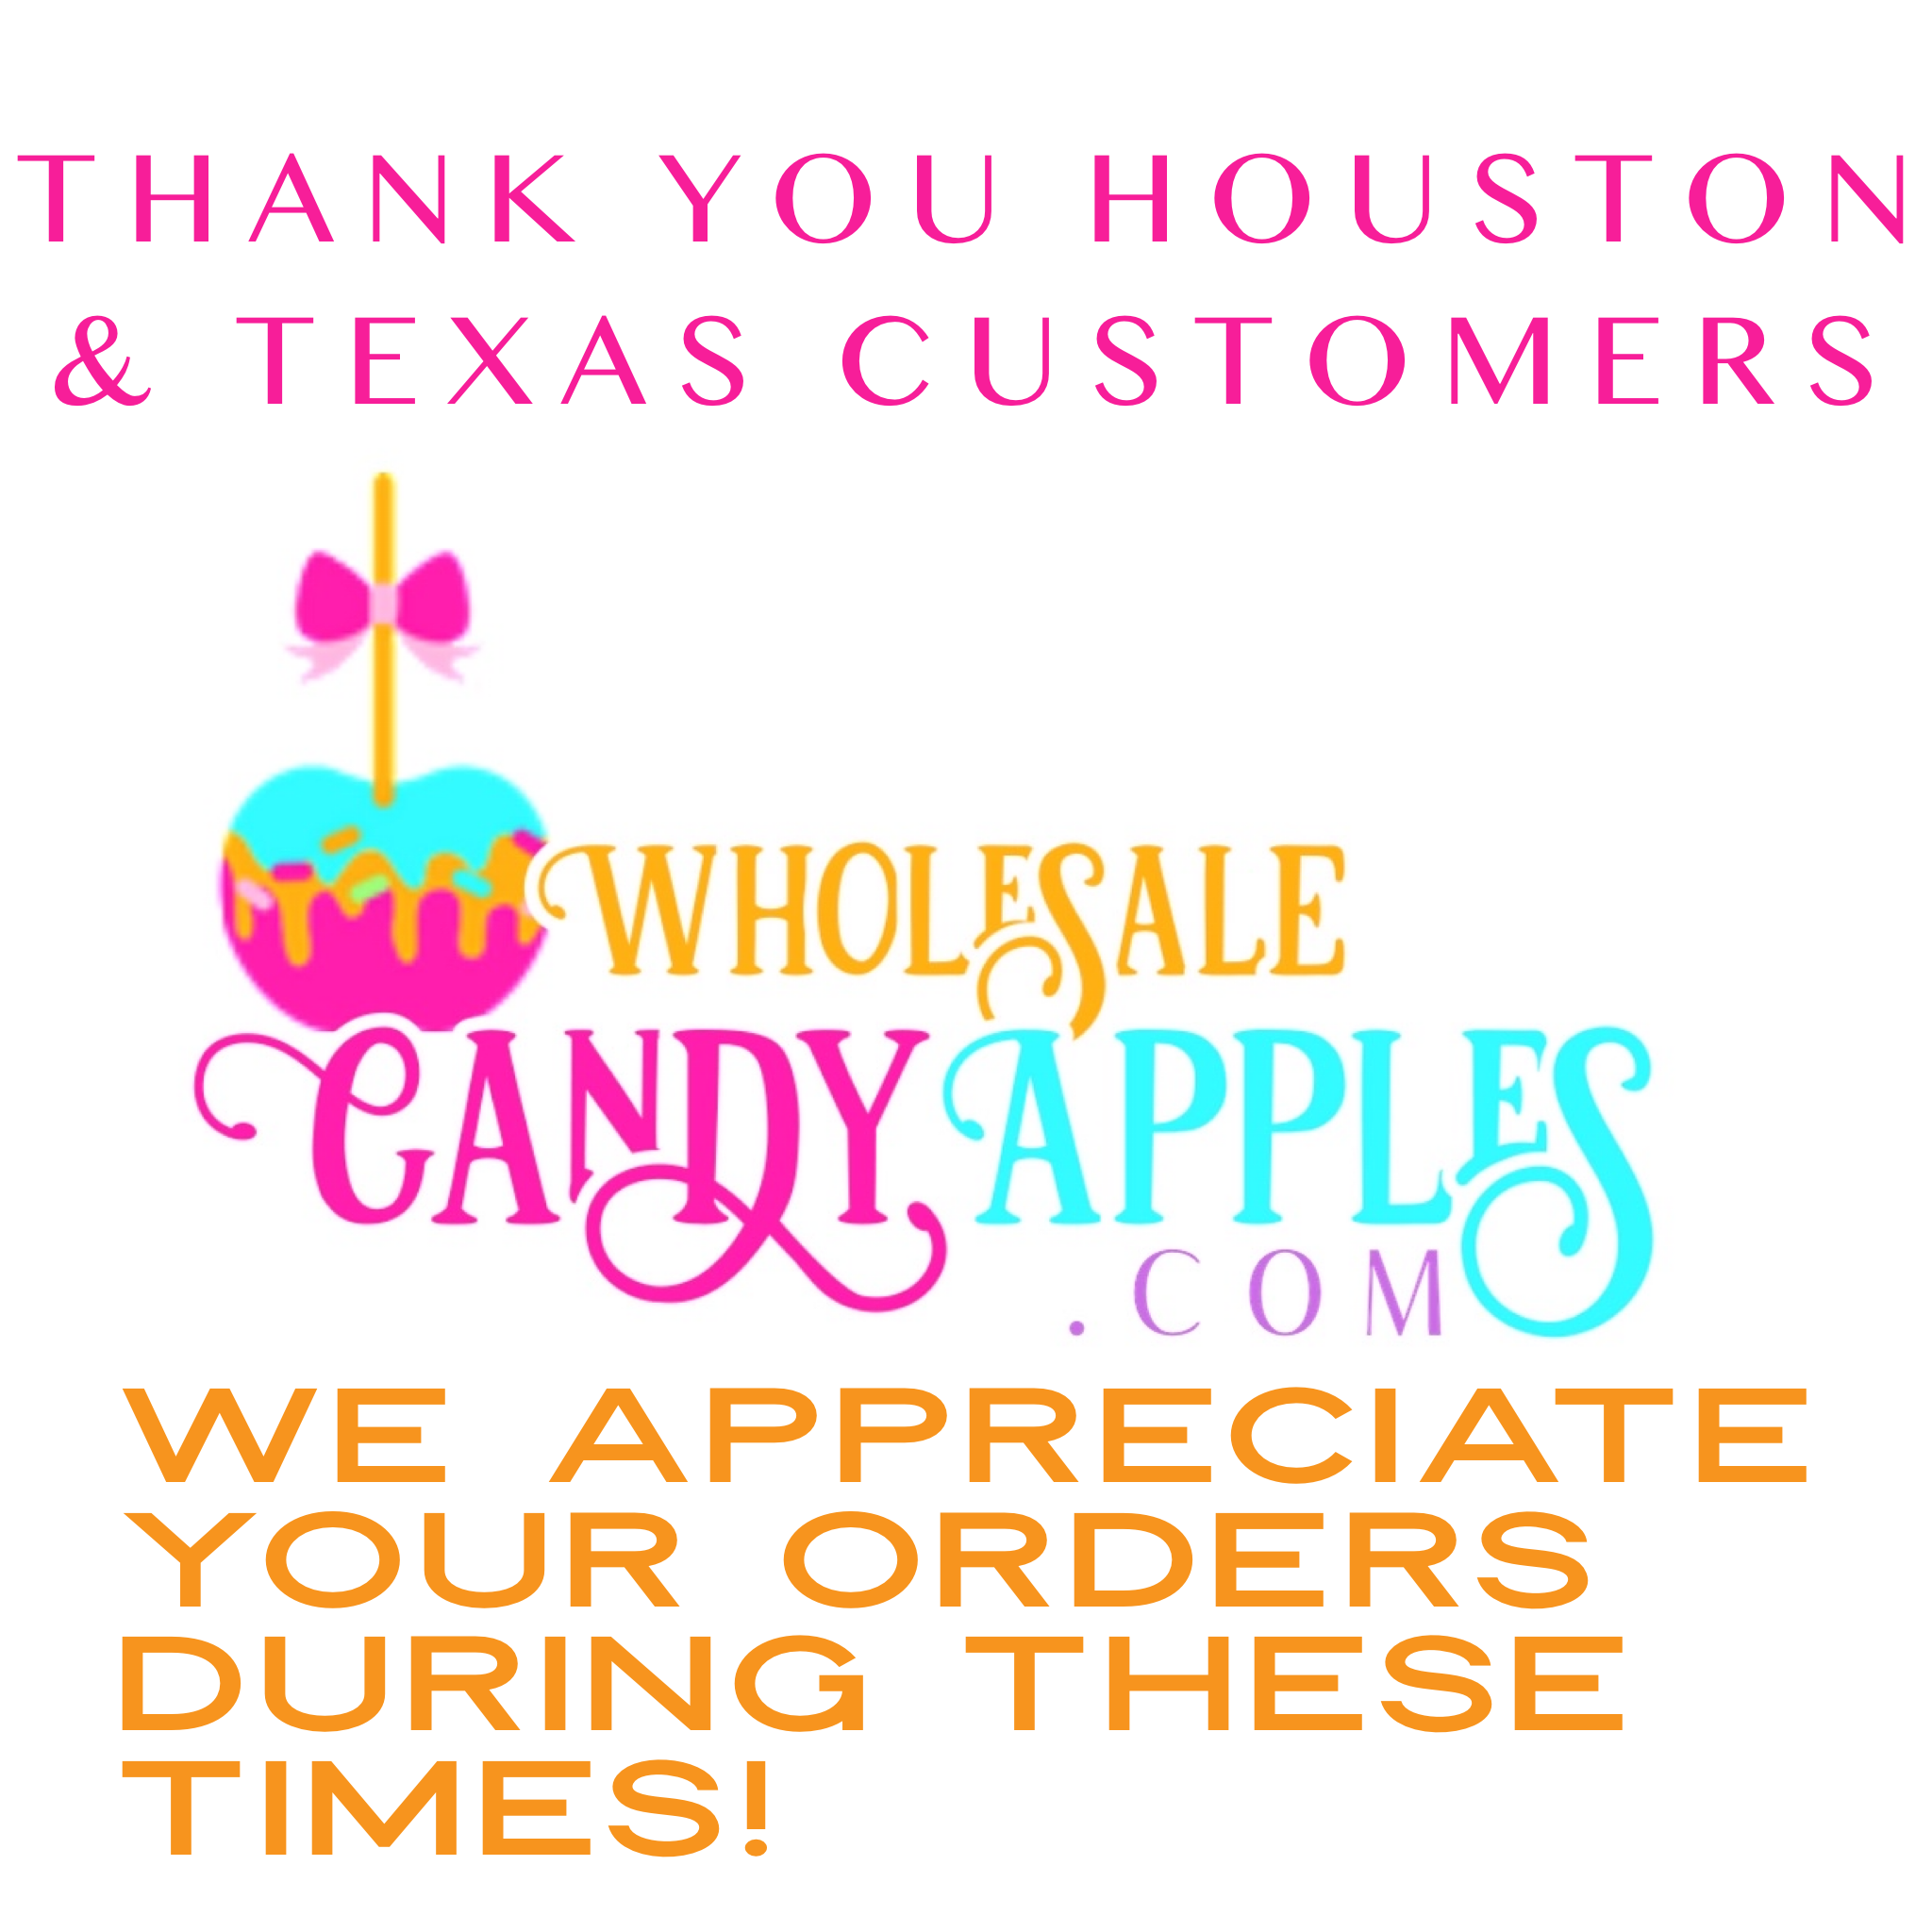 wholesalecandyapples.com